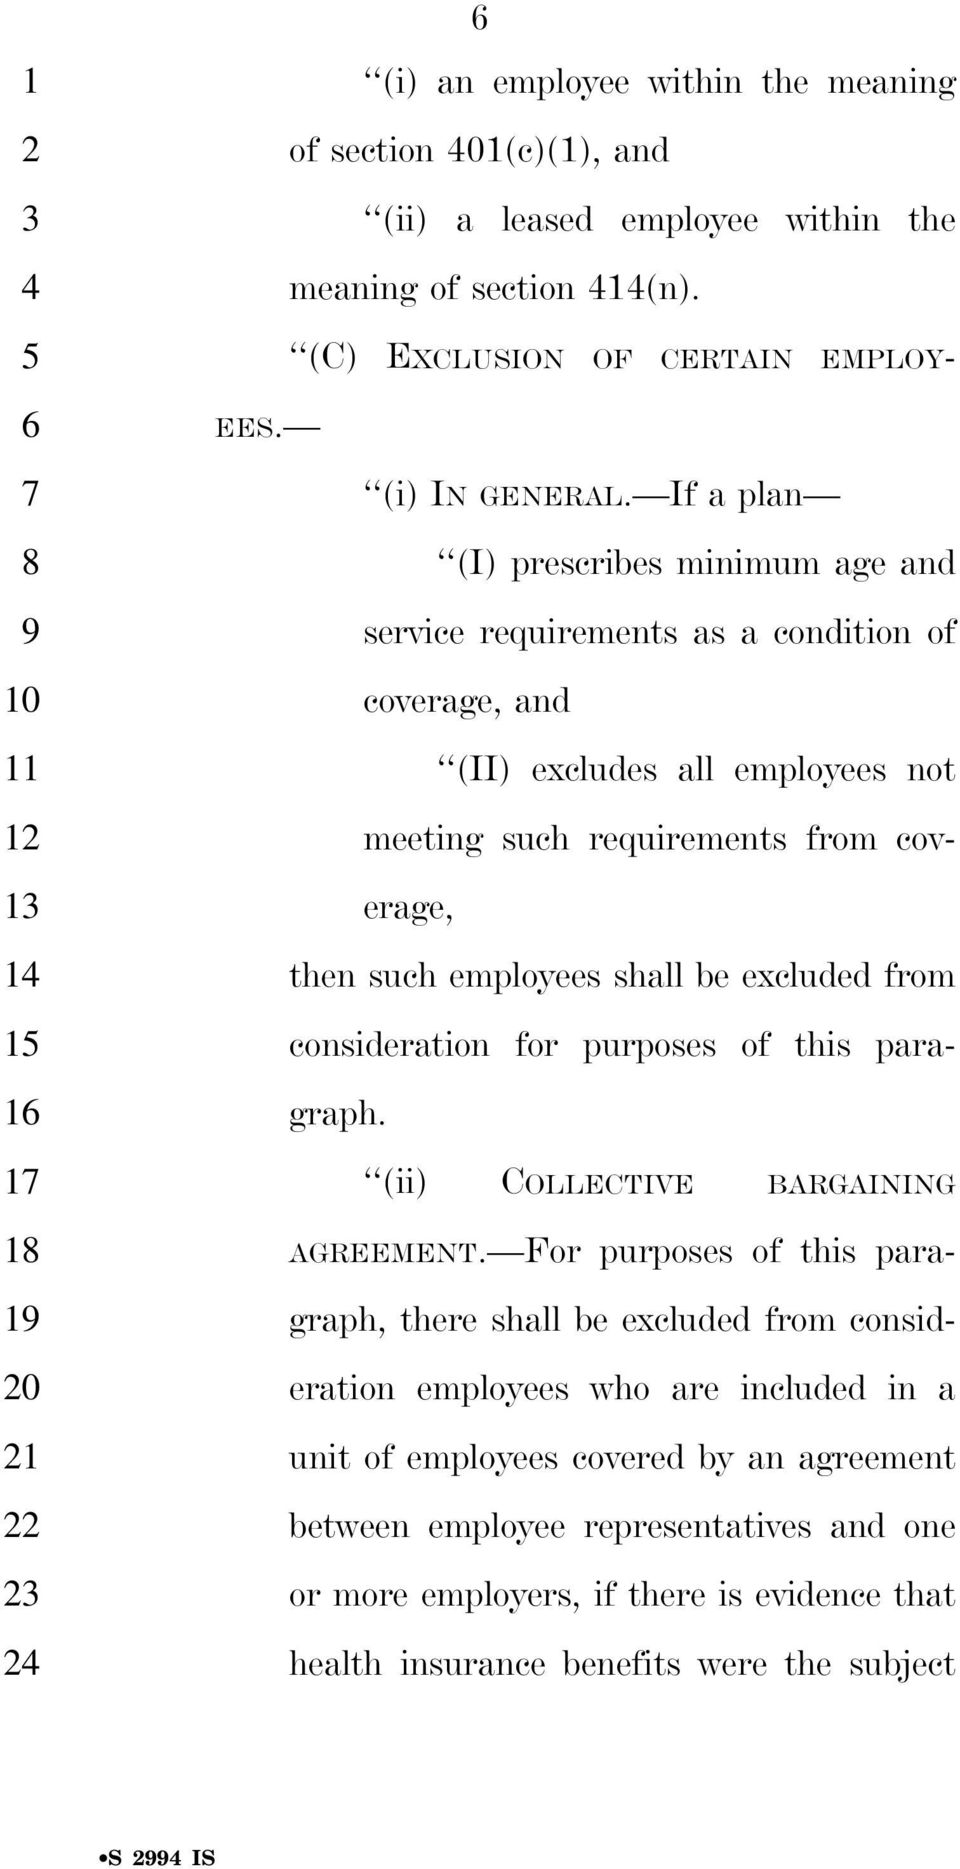 be excluded from consideration for purposes of this paragraph. (ii) COLLECTIVE BARGAINING AGREEMENT.